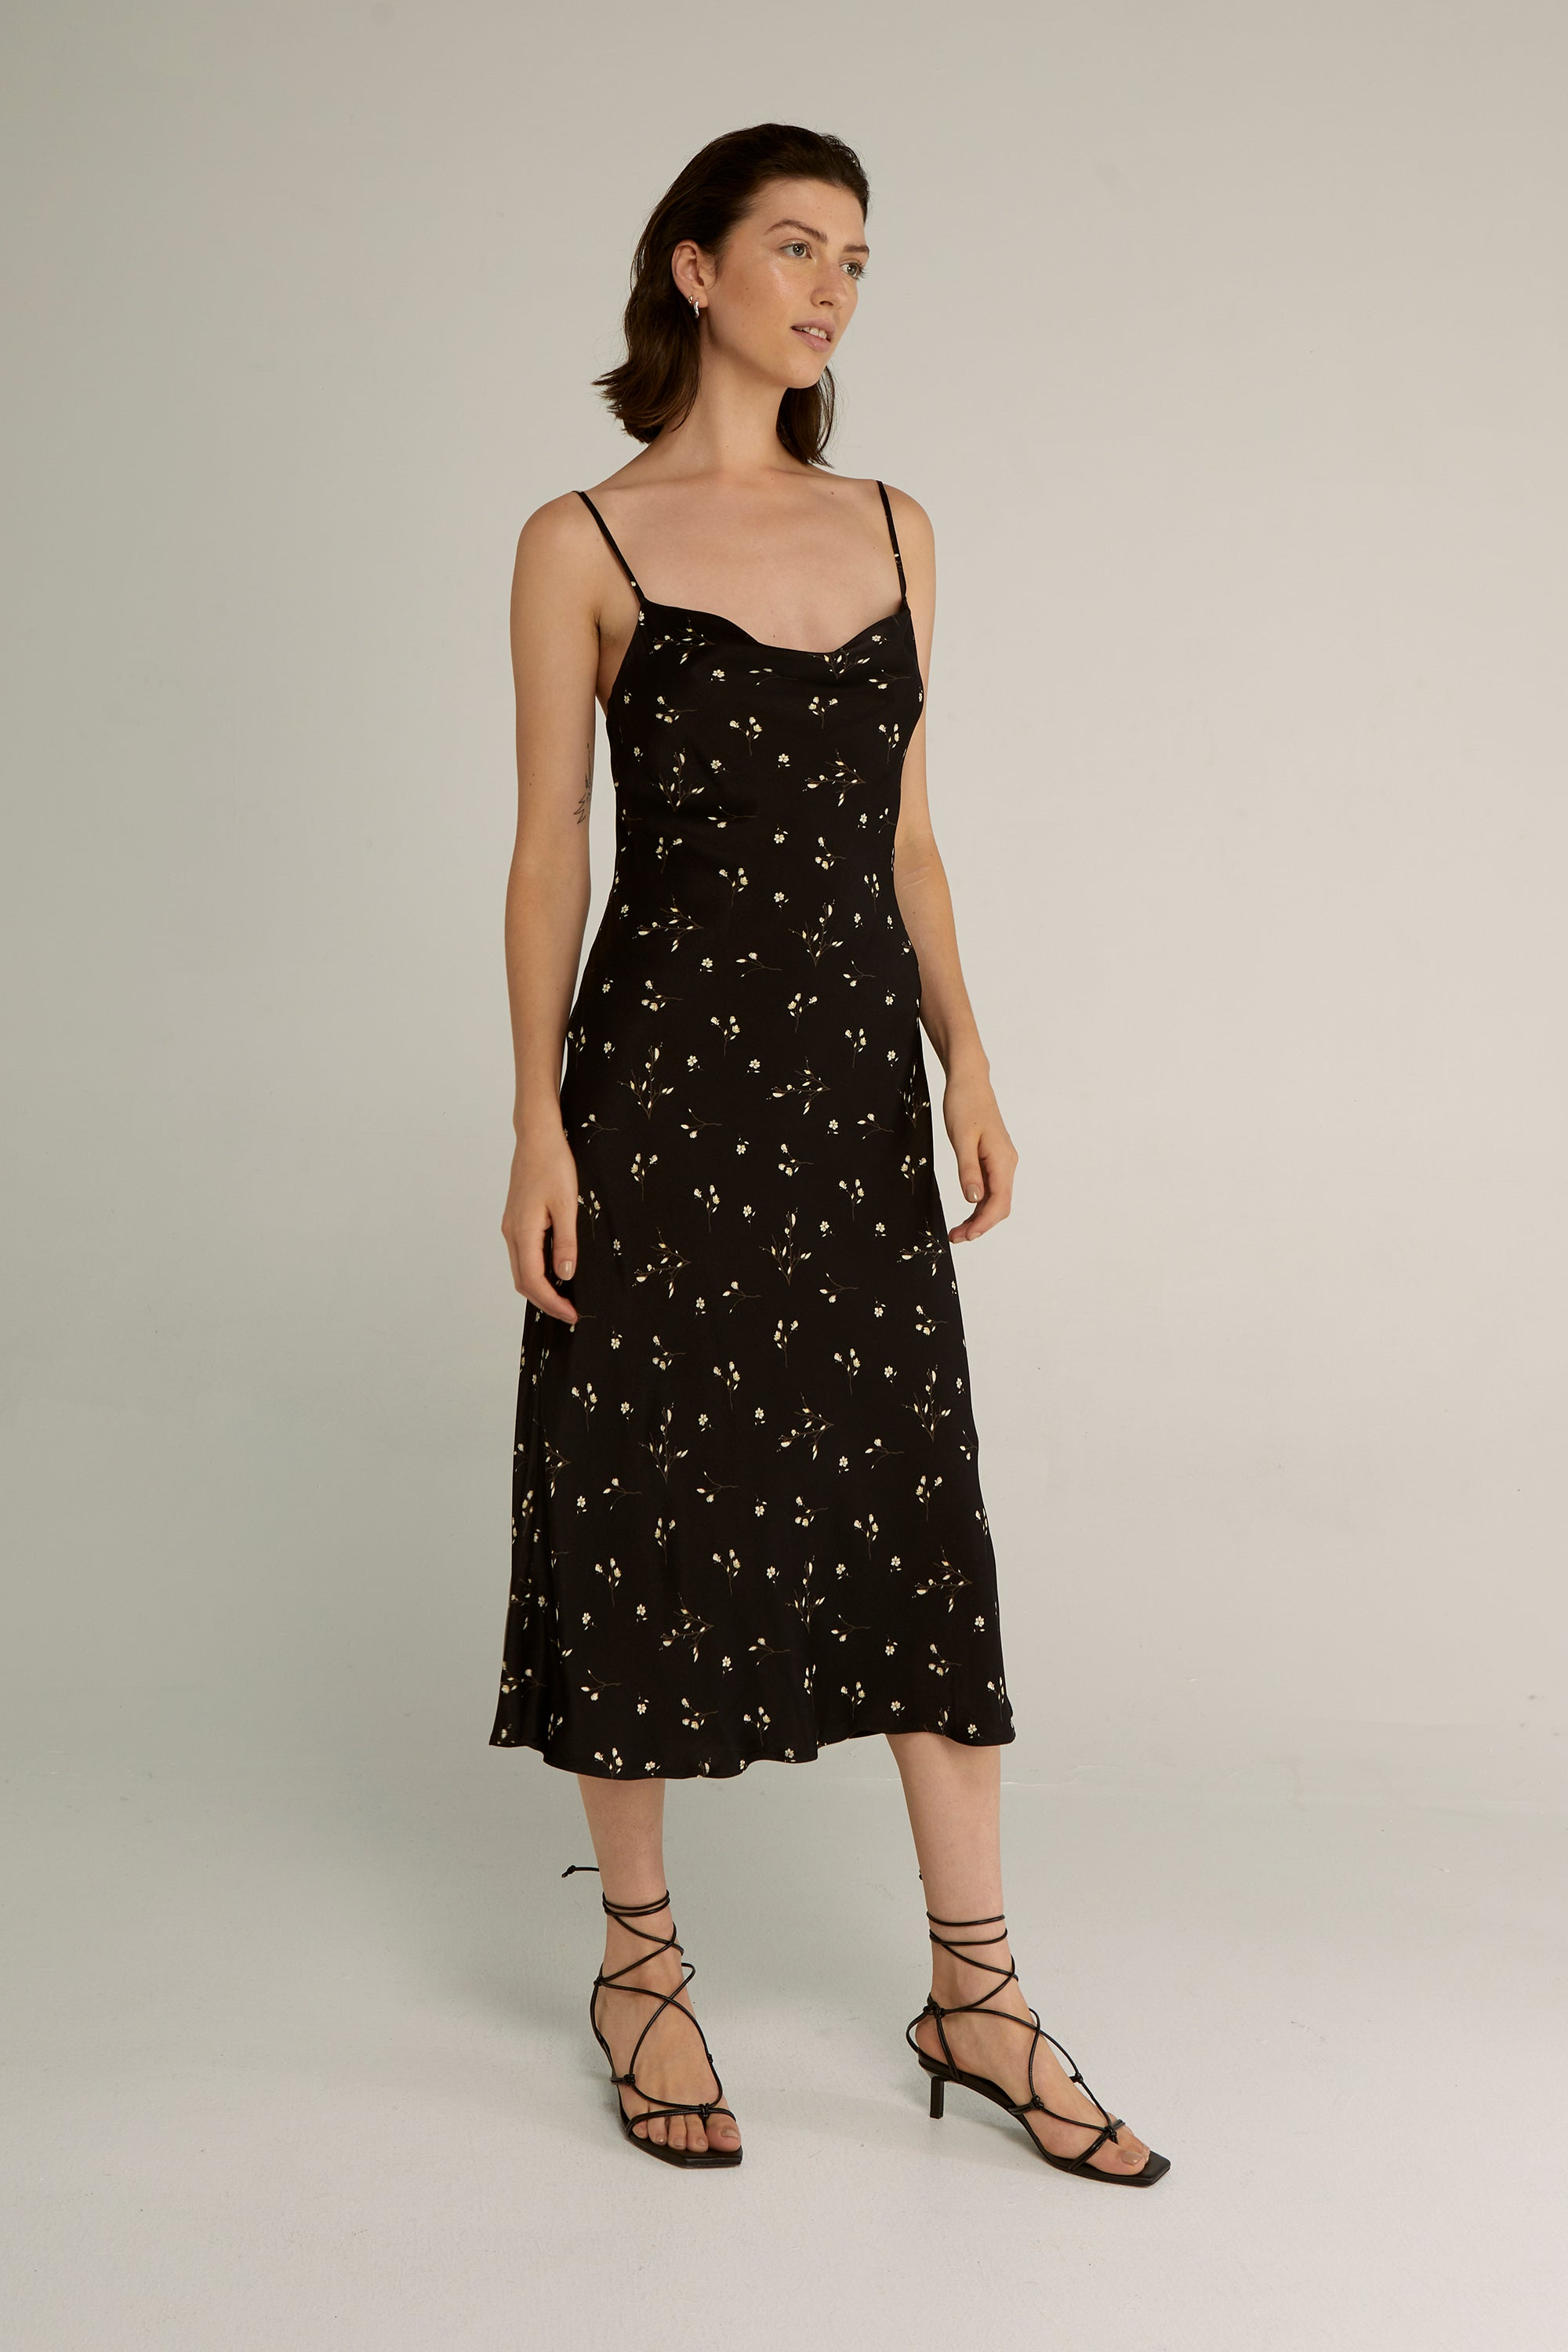 NIGHT BLOSSOM BIAS SLIP DRESS | FLORAL